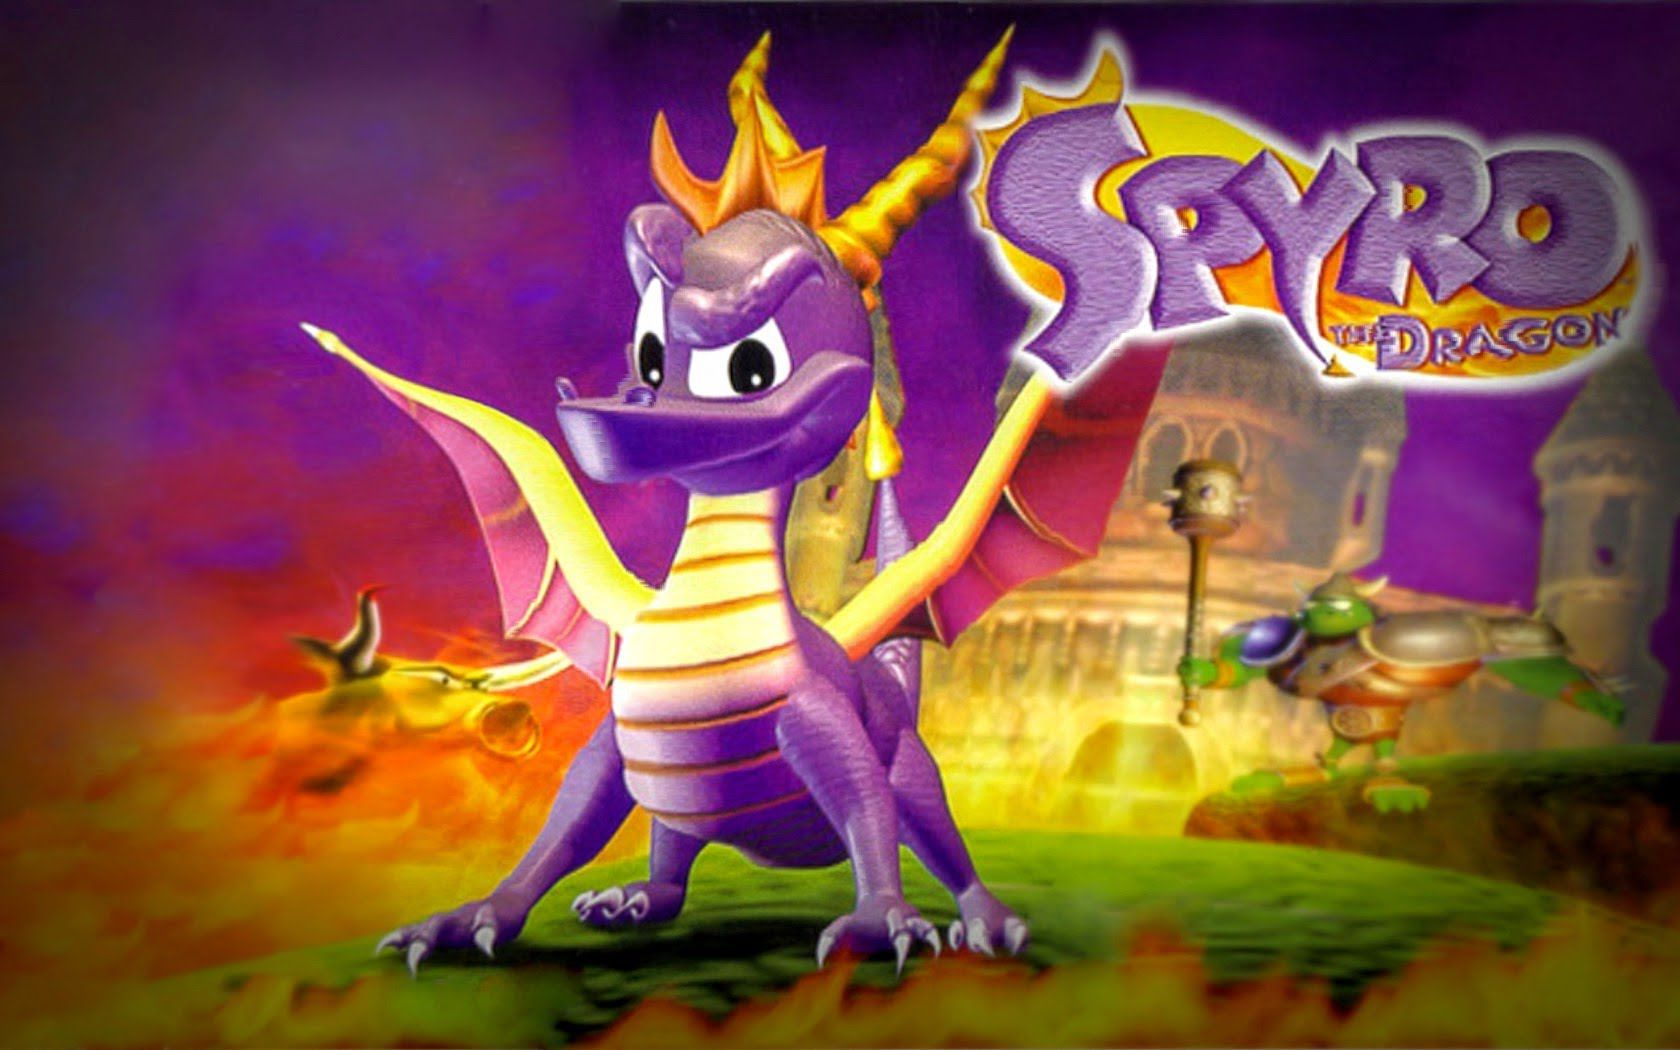 CONFIRMADO! Spyro the Dragon ganha trilogia remasterizada